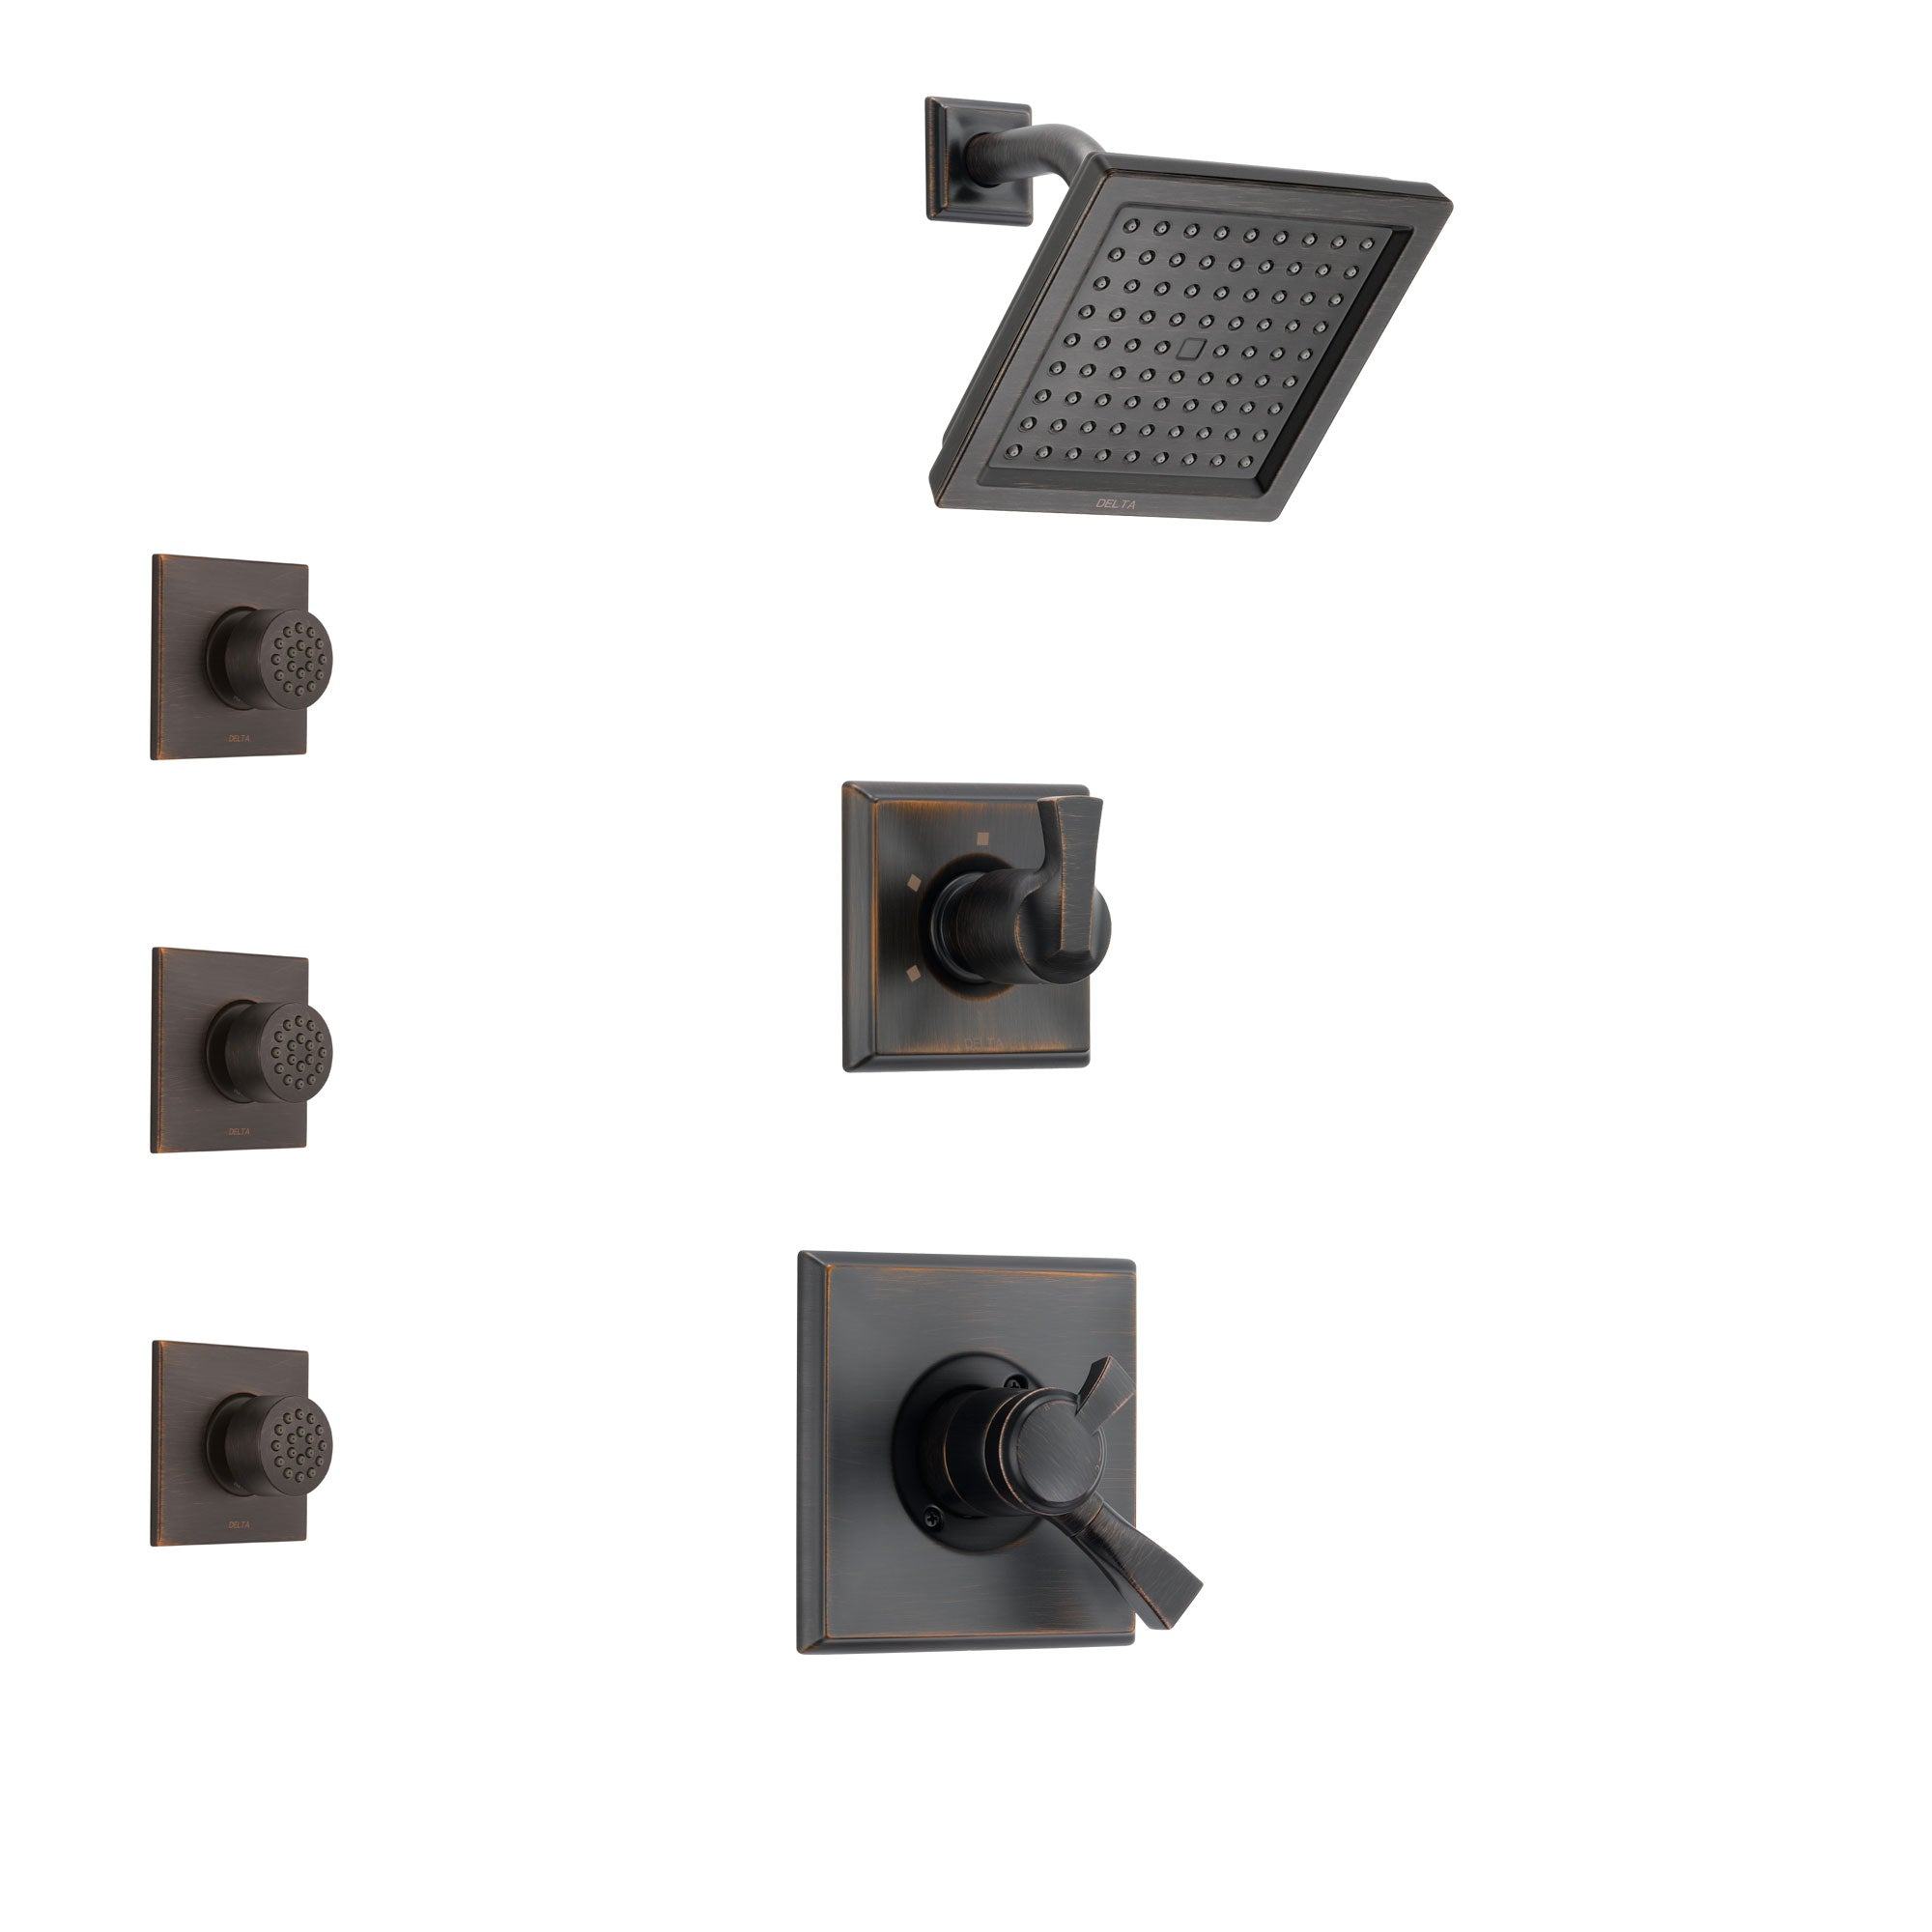 Delta Dryden Venetian Bronze Finish Shower System with Dual Control Handle, 3-Setting Diverter, Showerhead, and 3 Body Sprays SS172511RB2